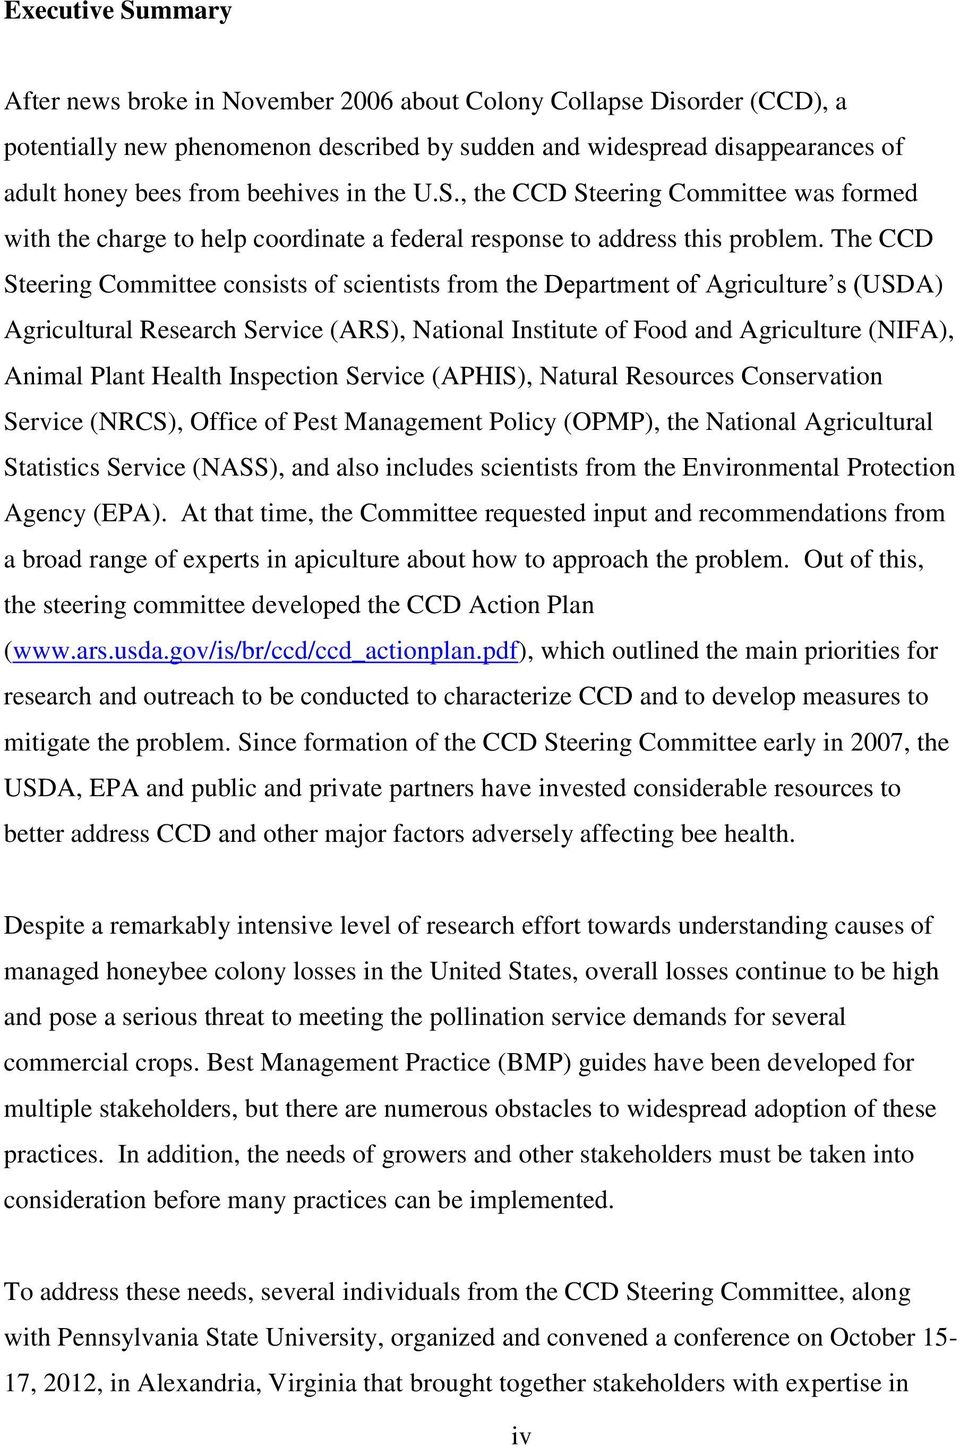 The CCD Steering Committee consists of scientists from the Department of Agriculture s (USDA) Agricultural Research Service (ARS), National Institute of Food and Agriculture (NIFA), Animal Plant